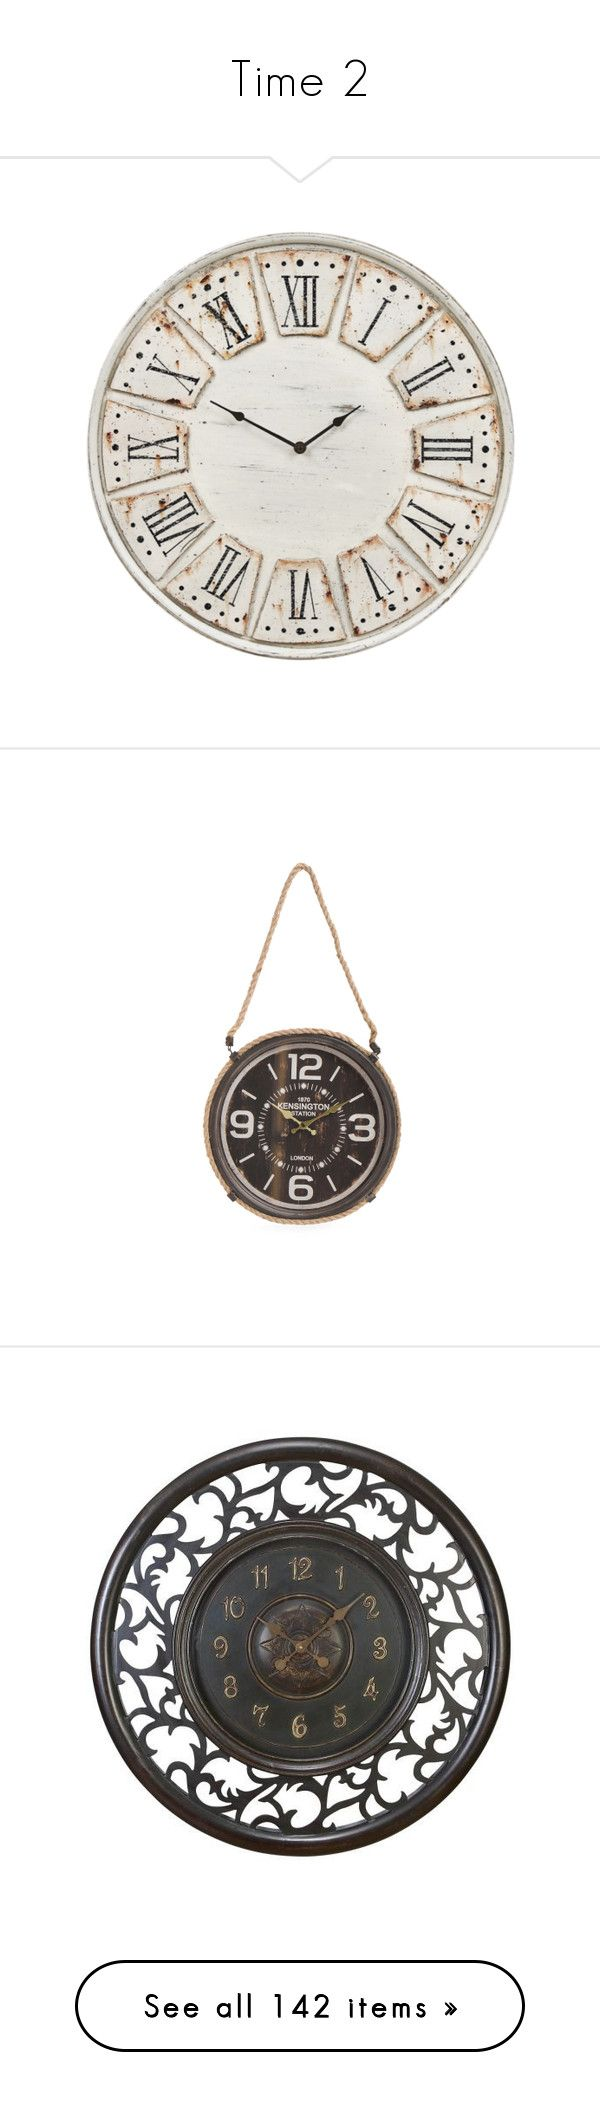 """""""Time 2"""" by mysfytdesigns ❤ liked on Polyvore featuring home, home decor, clocks, battery operated clocks, battery clock, battery powered clock, dark antique brown, wall clocks, wooden wall clock and brown wall clock"""